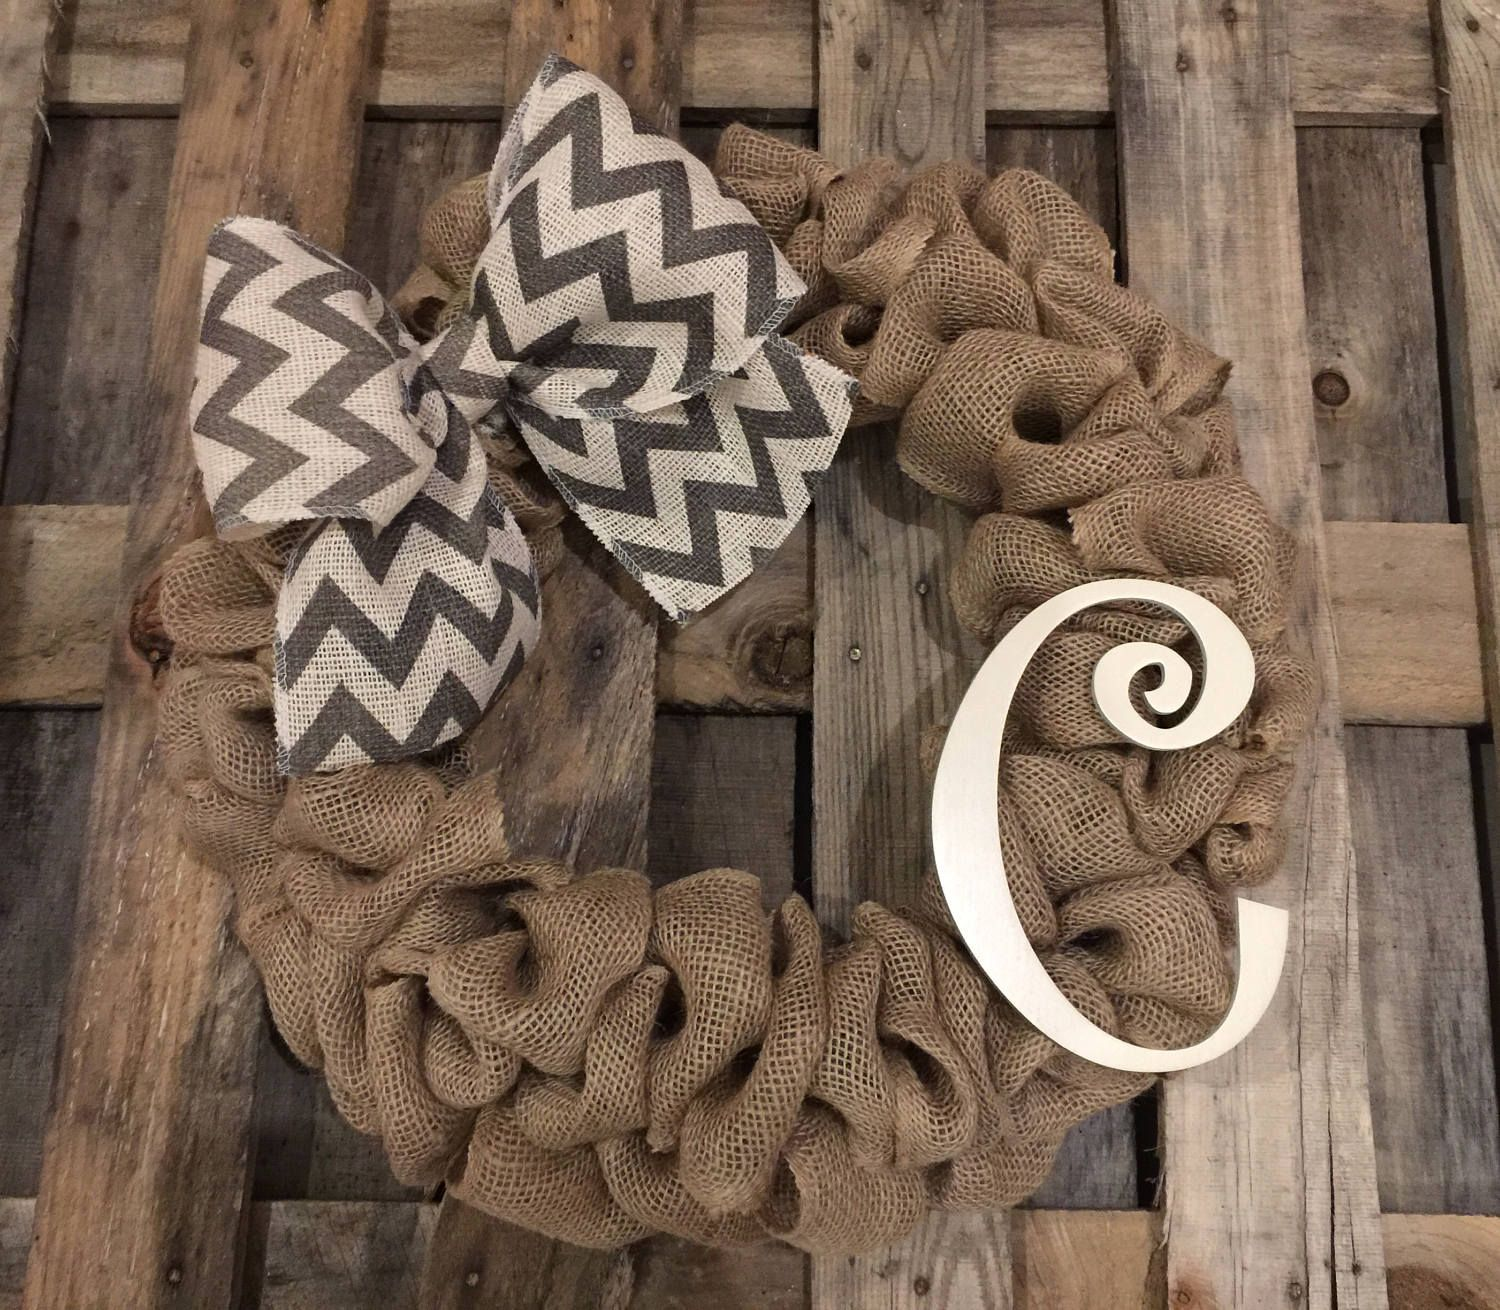 Monogrammed Initial C Burlap Gray Chevron Curly Wood Letter Wreath Front Door Personalized Wedding Gift Ru Rustic Gift Letter Wall Decor Wreaths For Front Door